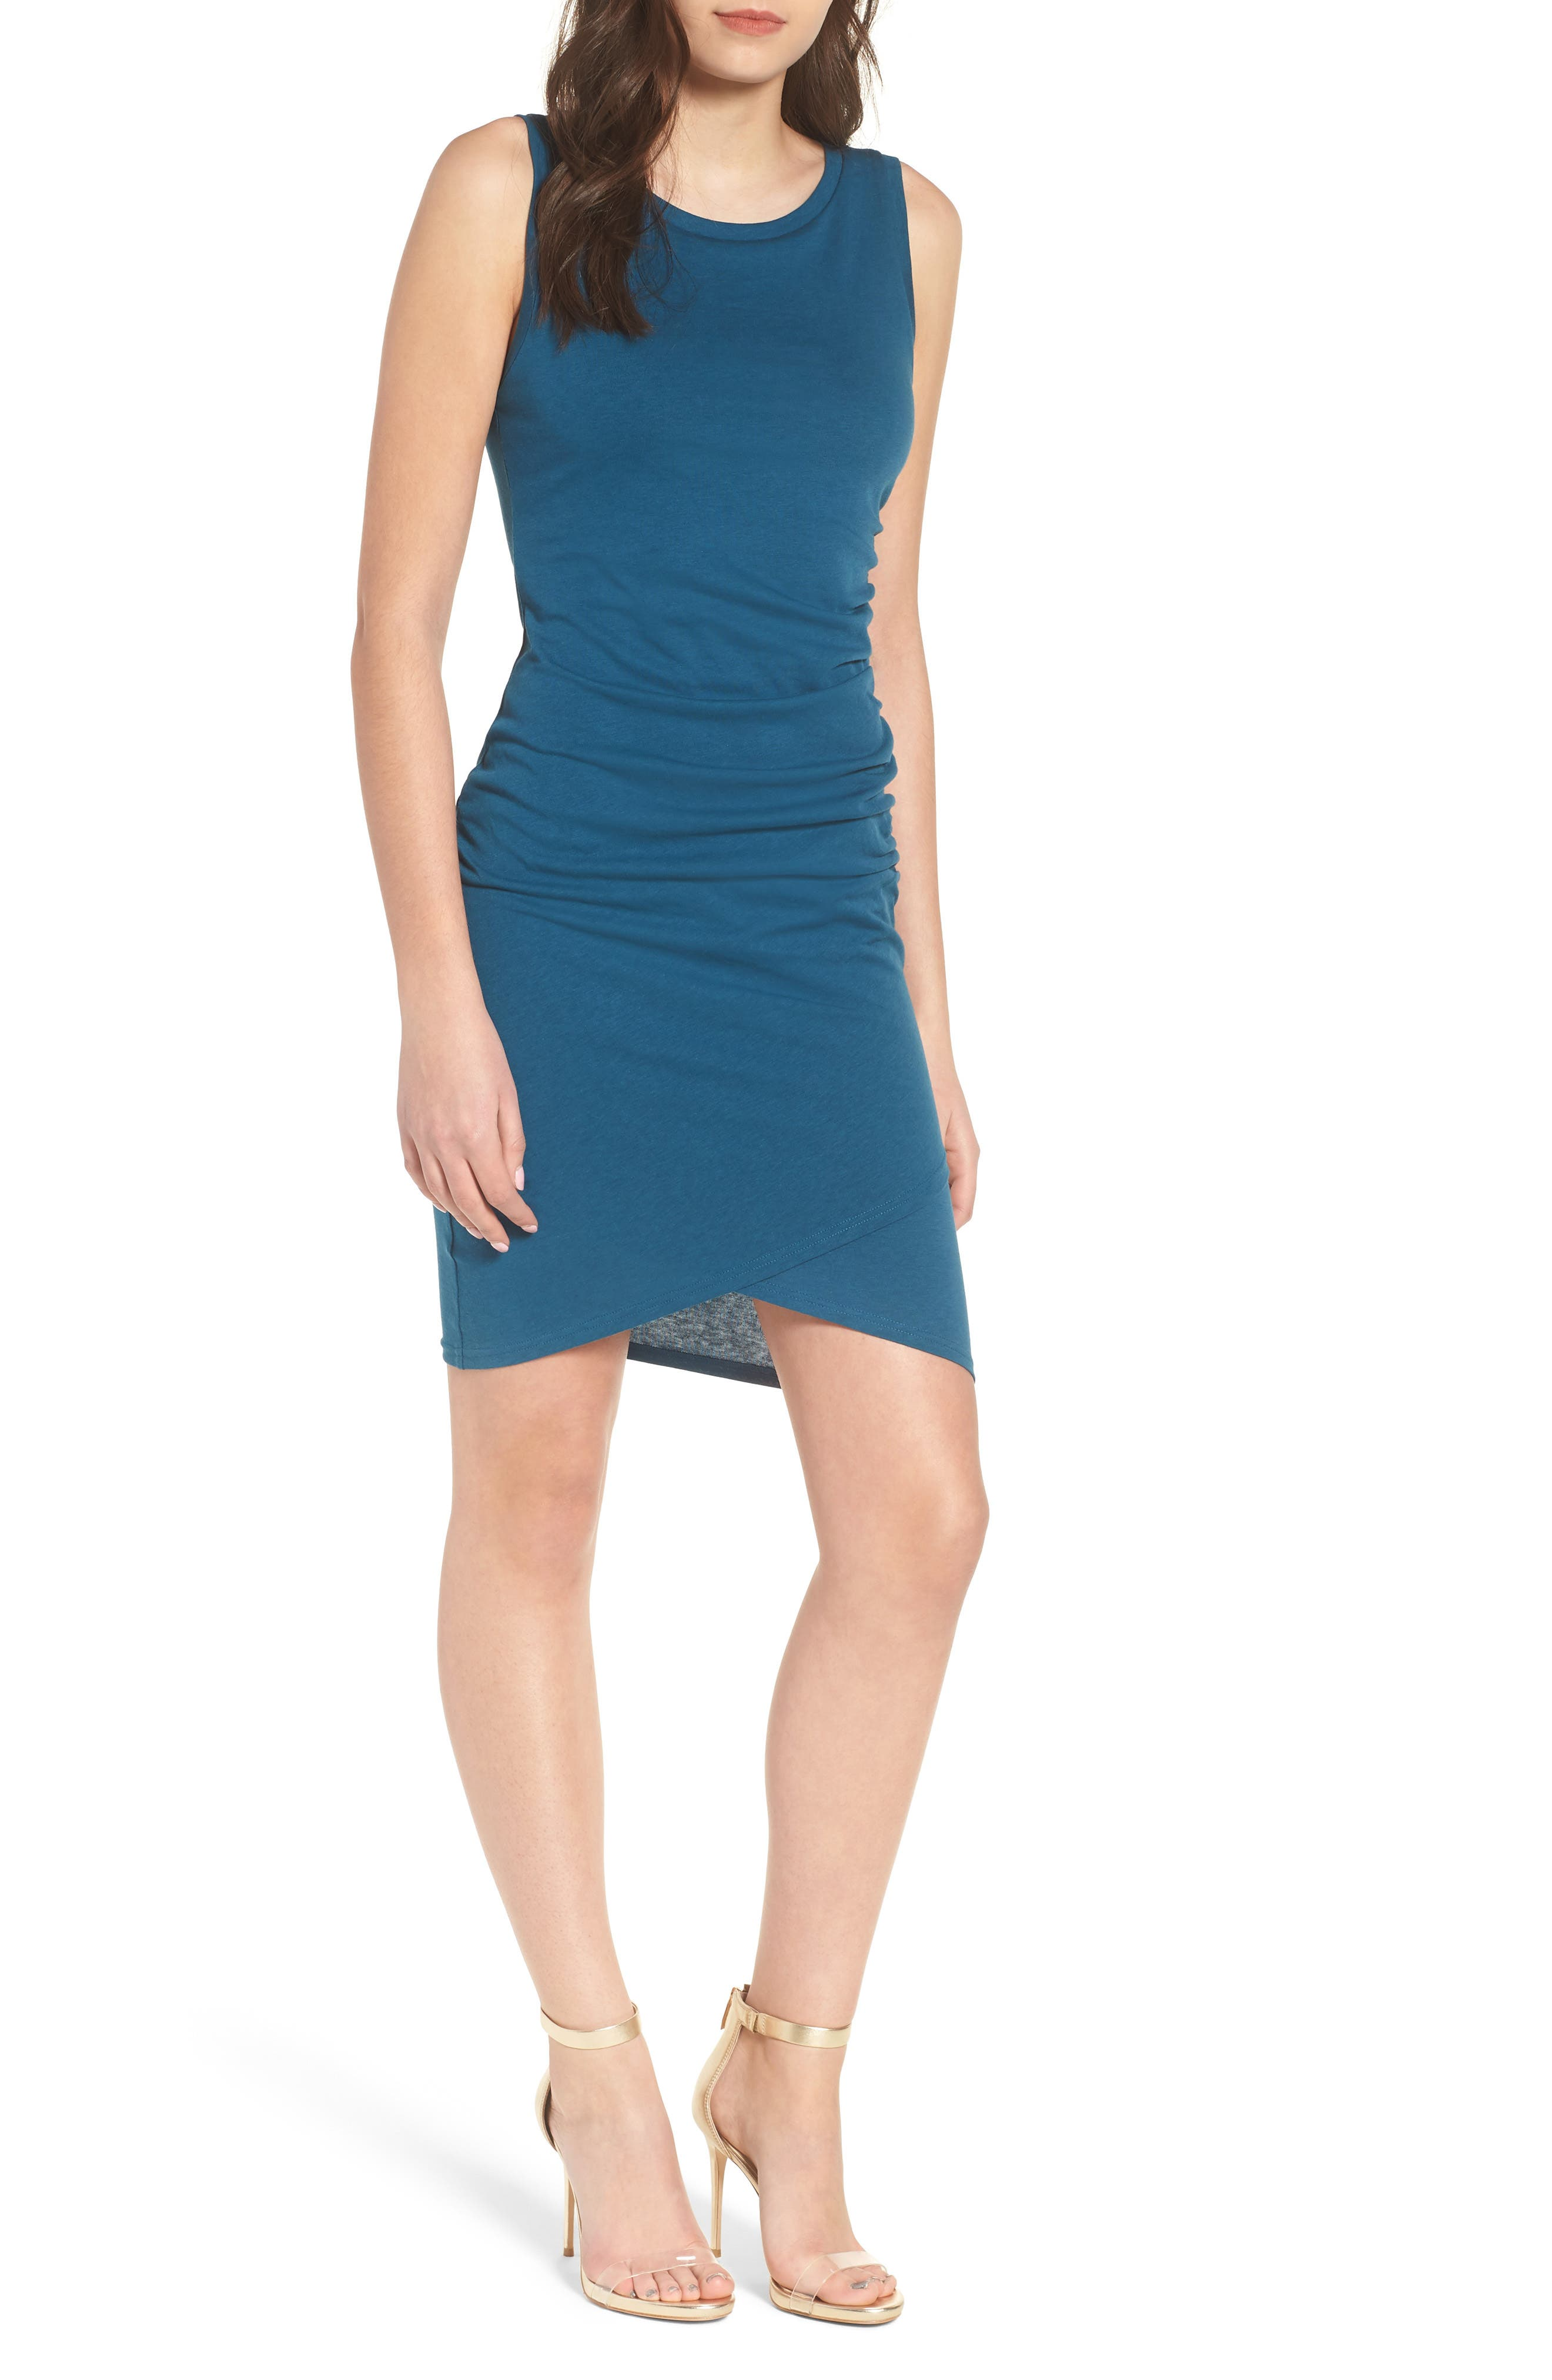 Ruched Body-Con Tank Dress,                         Main,                         color, Teal Seagate